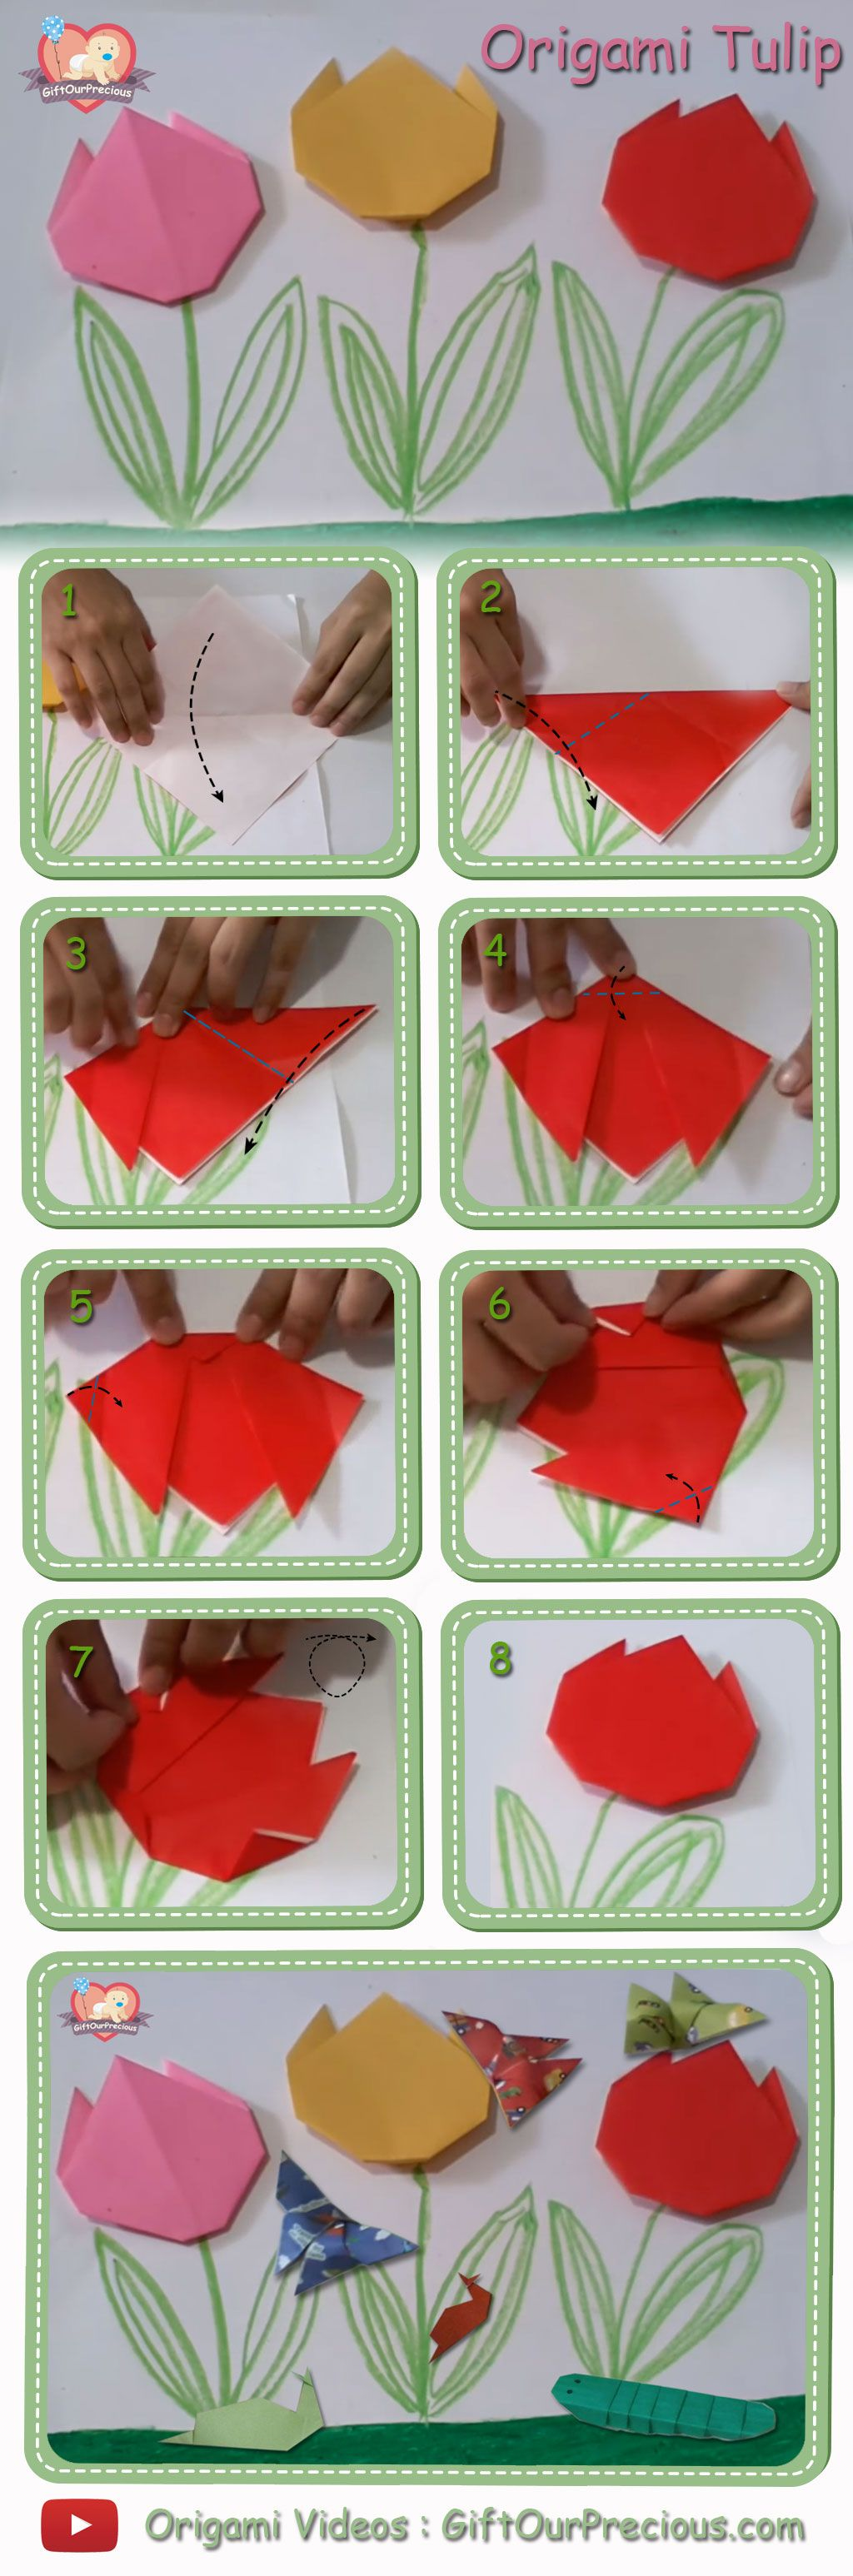 Origami Tulip Flowers Step By Step Instruction Pinterest Tulips